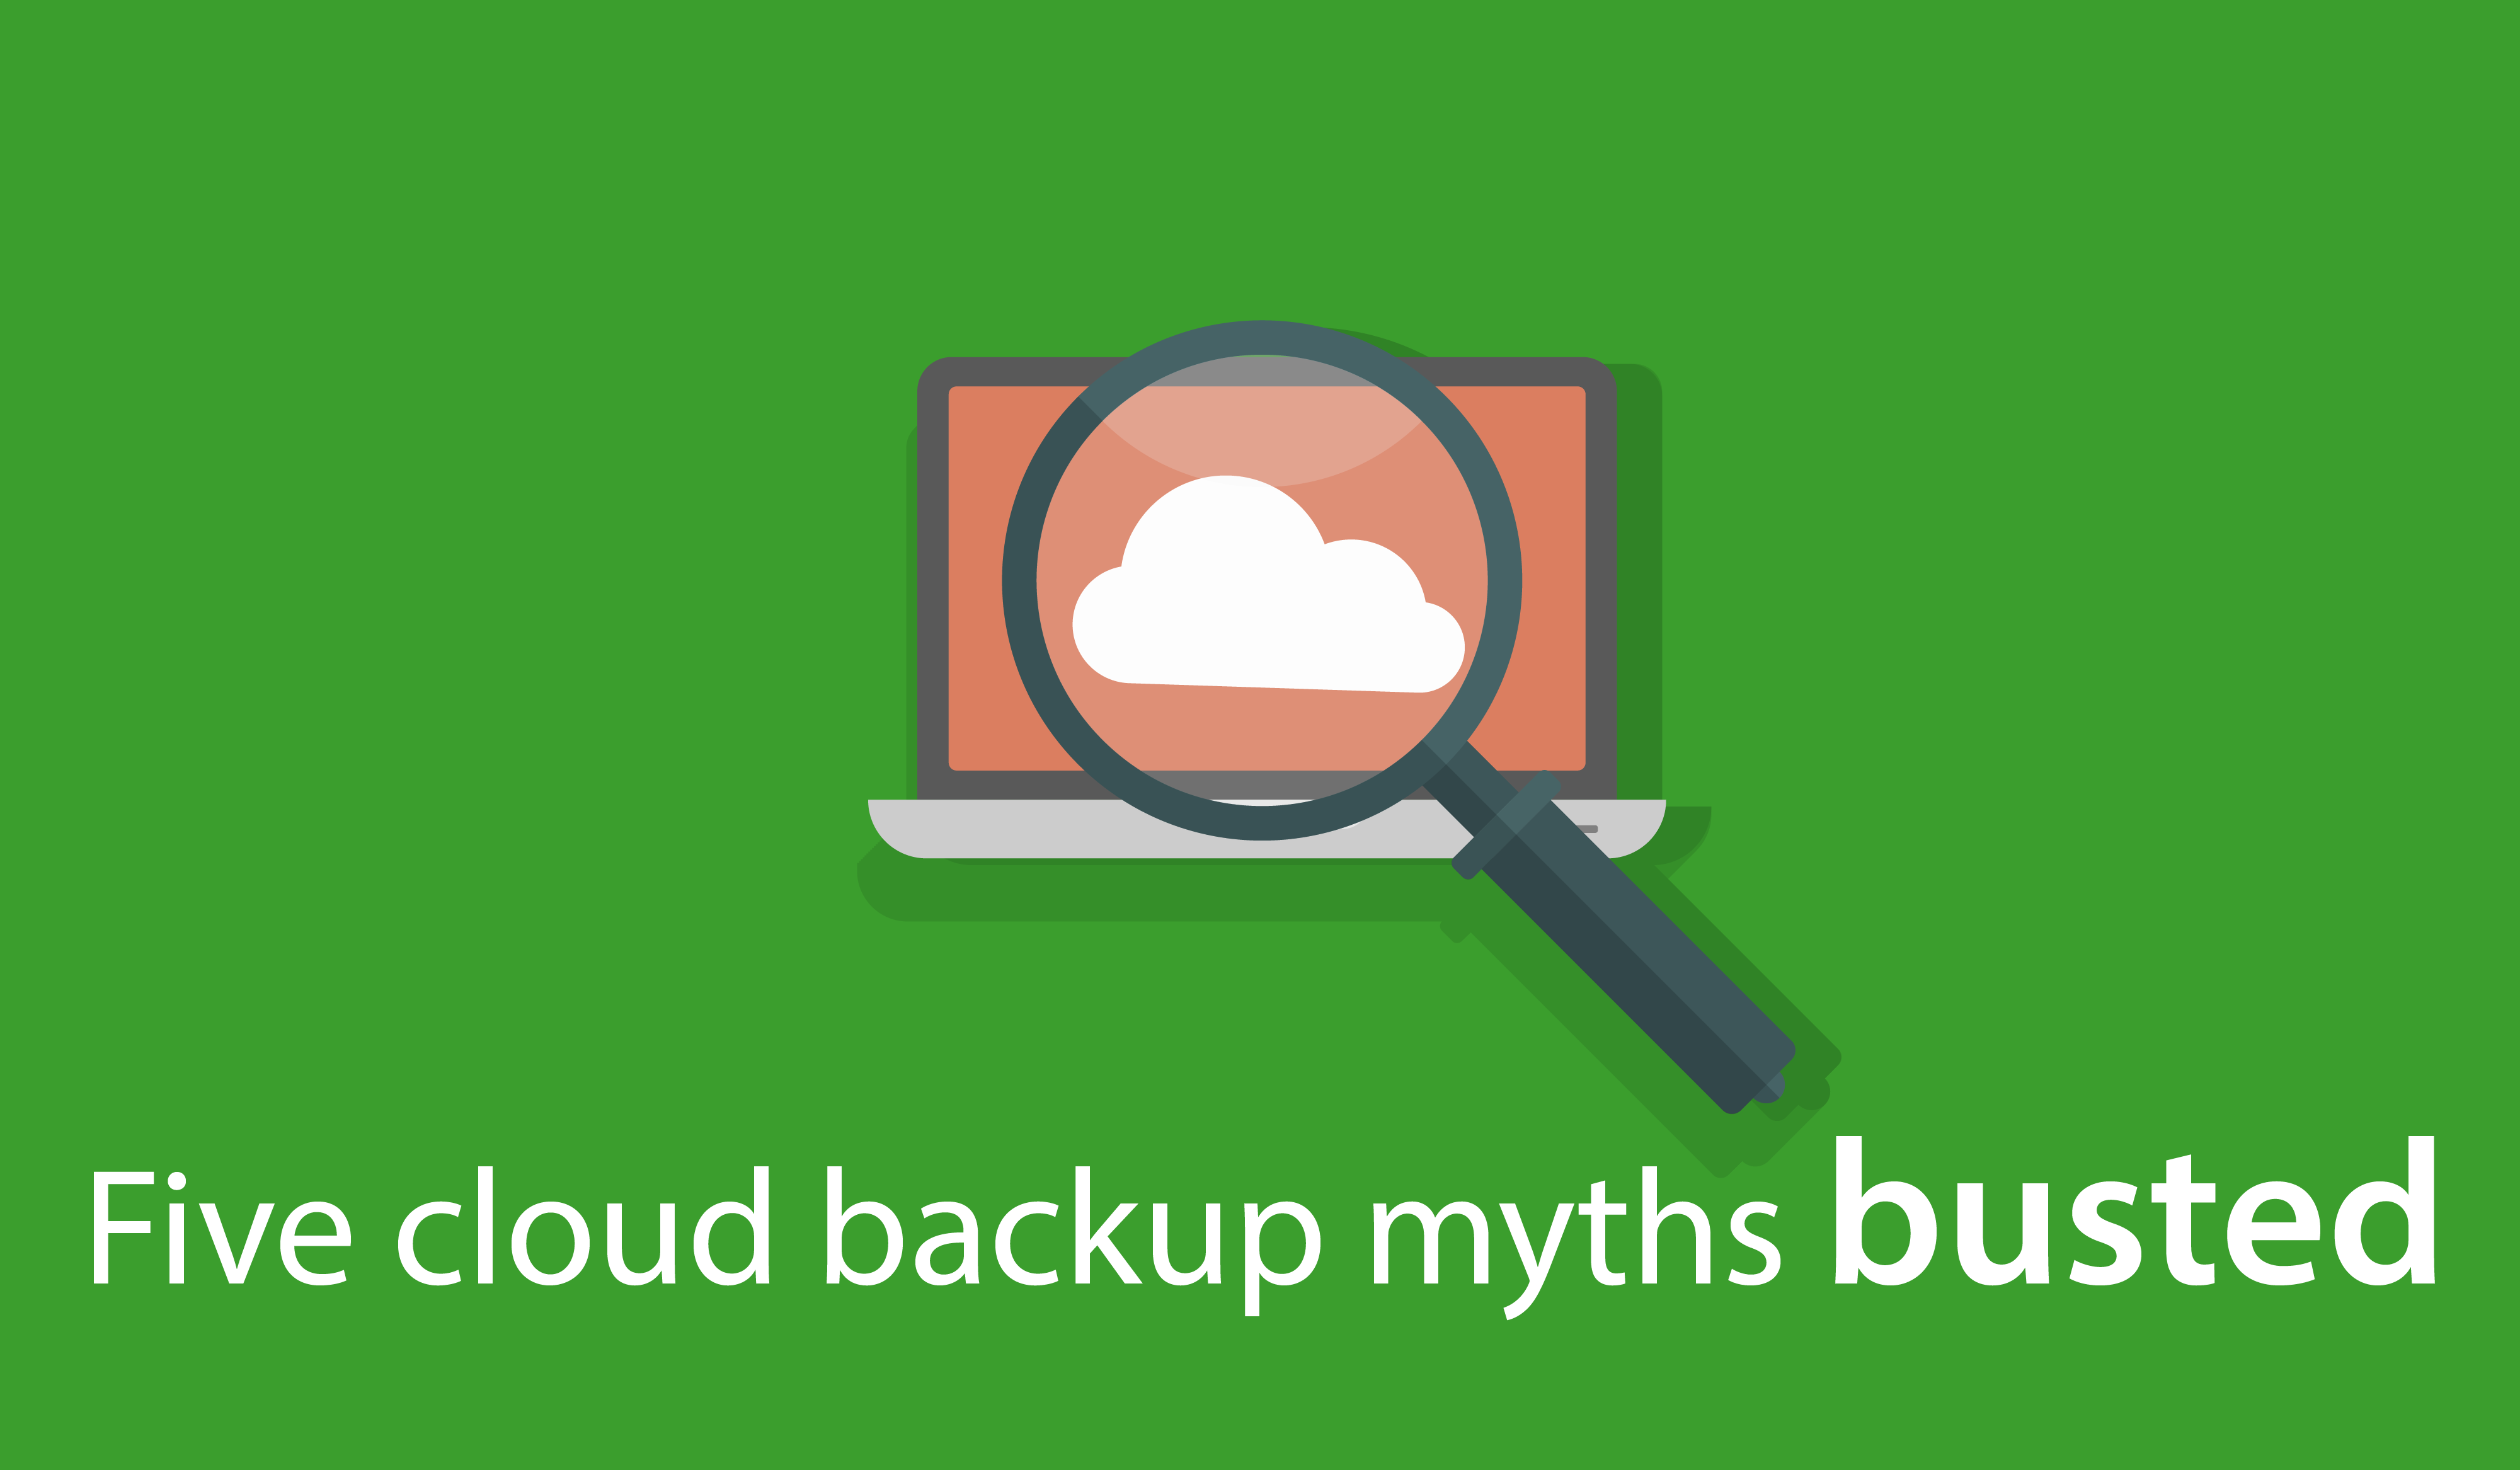 Five cloud backup myths BUSTED